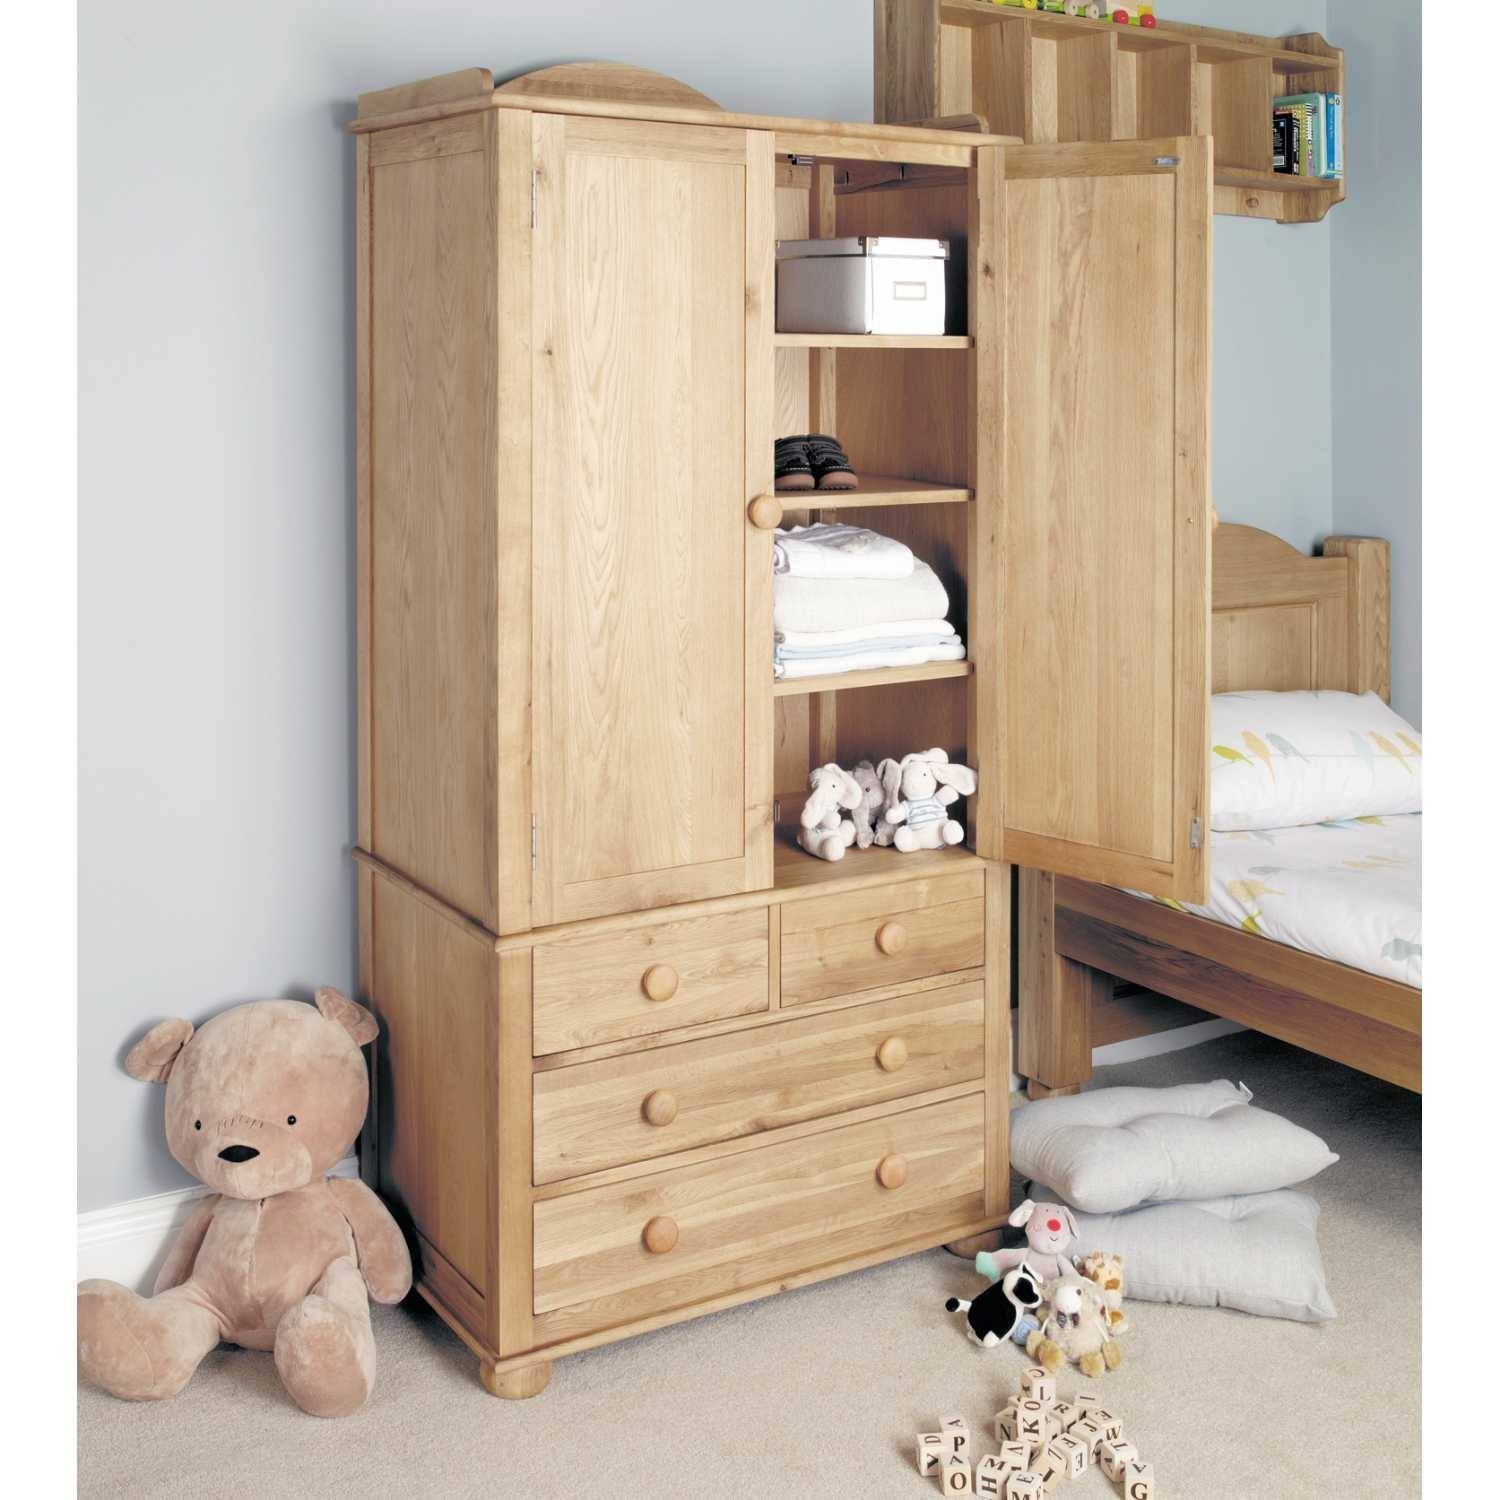 30 Best Childrens Wardrobes With Drawers And Shelves with regard to Single Wardrobe With Drawers and Shelves (Image 4 of 30)